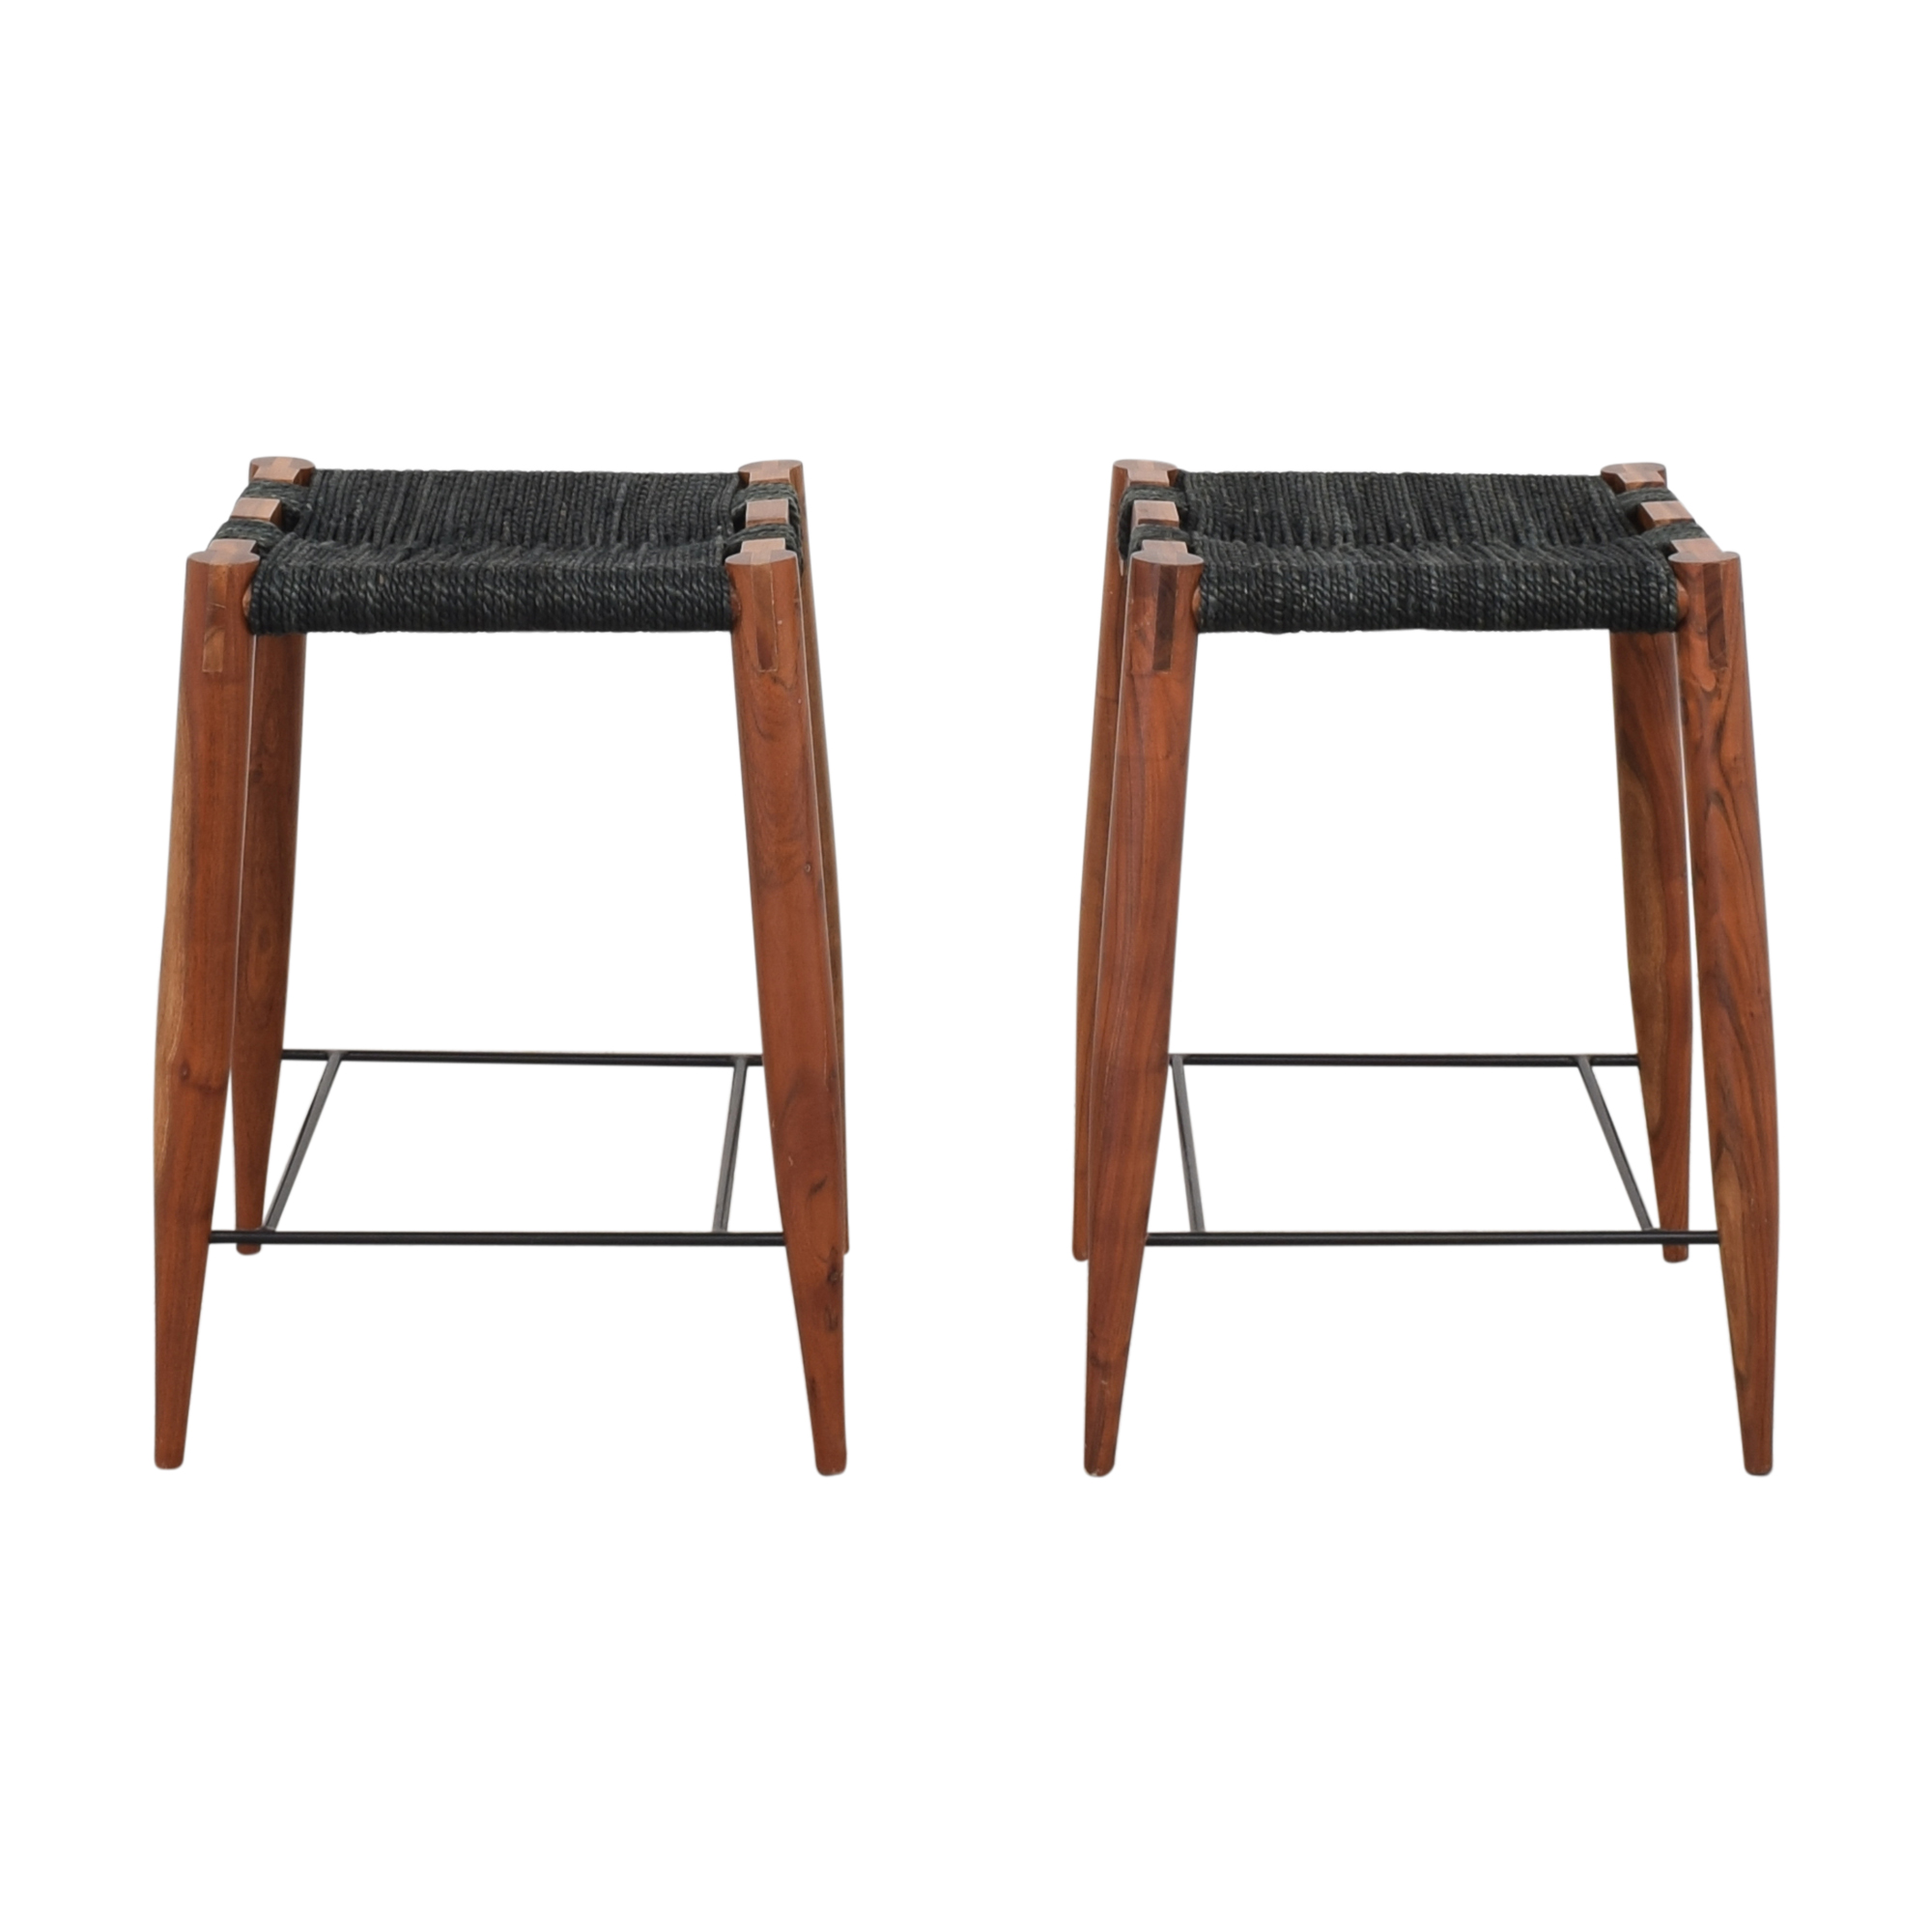 CB2 CB2 Wrap Bar Stools coupon